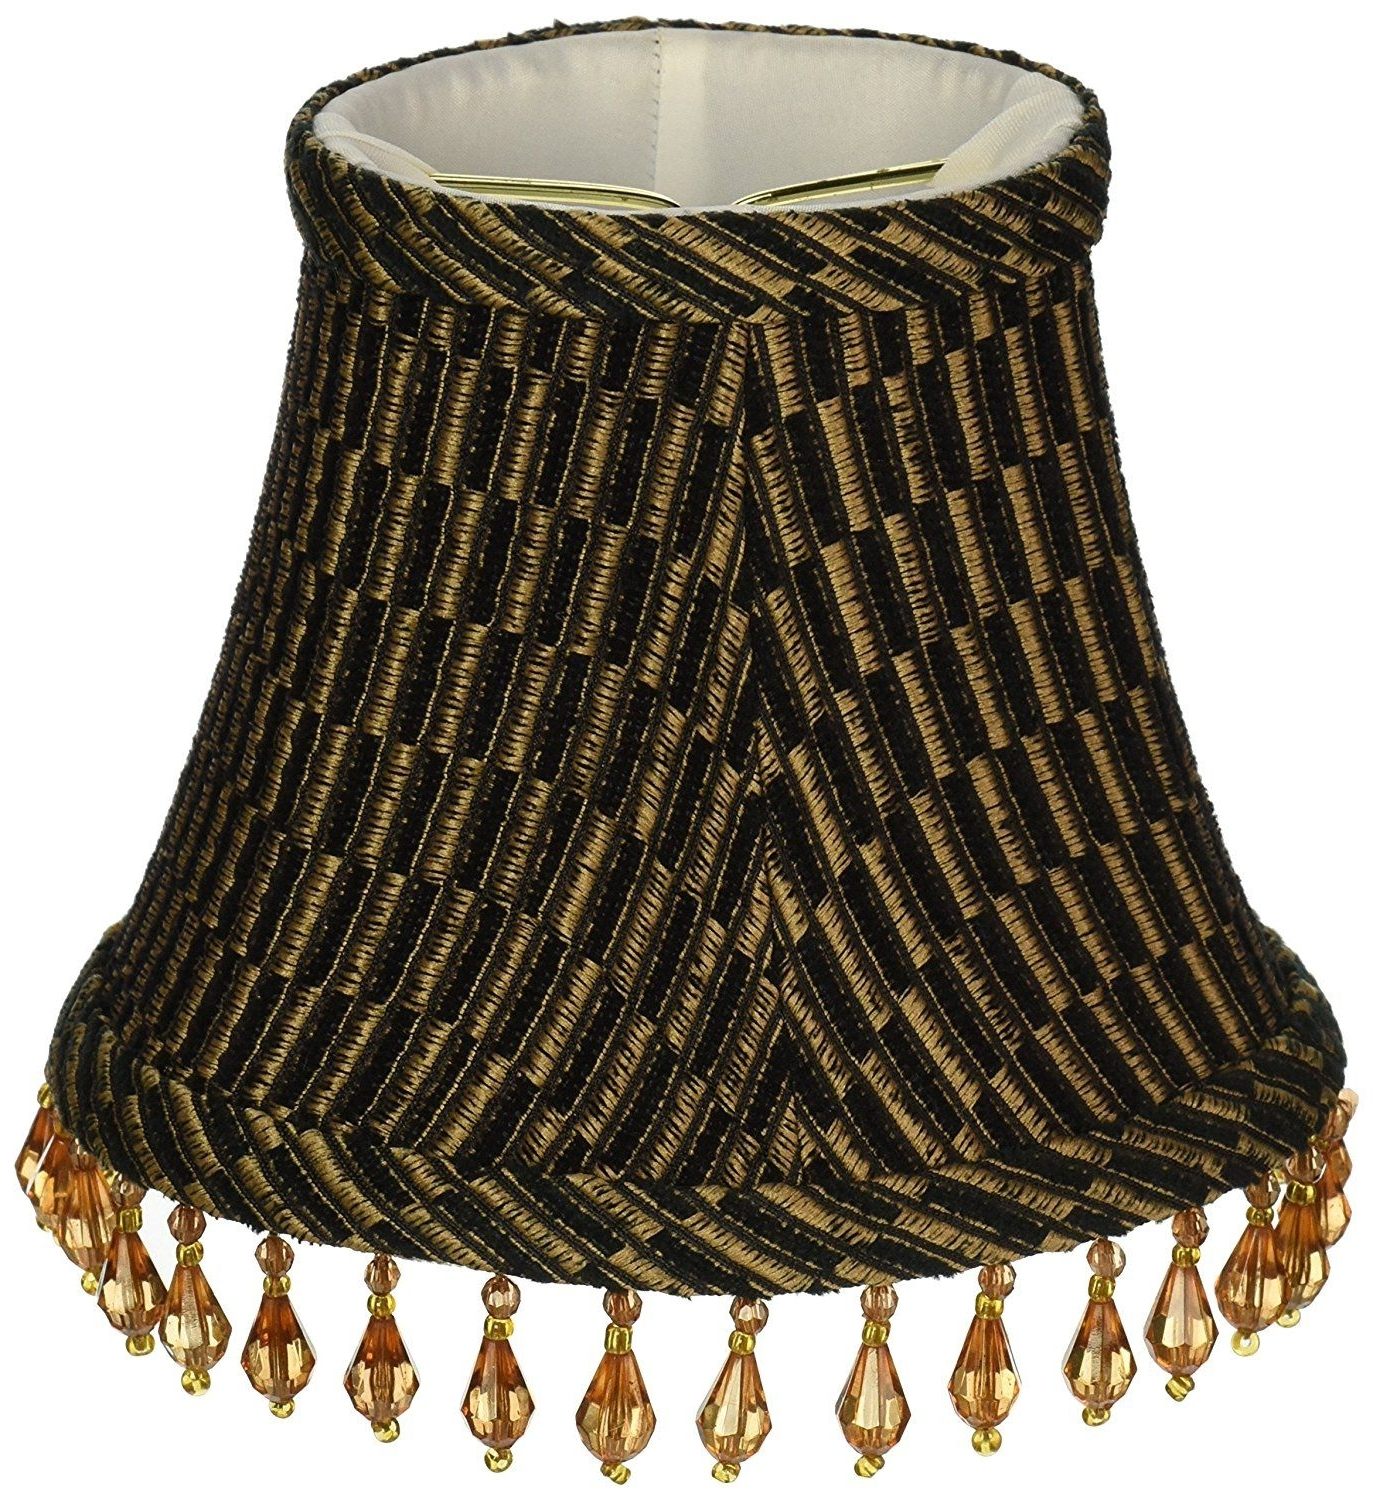 Well Known Lamp: Chandelier Lamp Shades Upgradelights Set Of 6 Barrel Shades 5 Regarding Chandelier Lamp Shades Clip On (View 18 of 20)